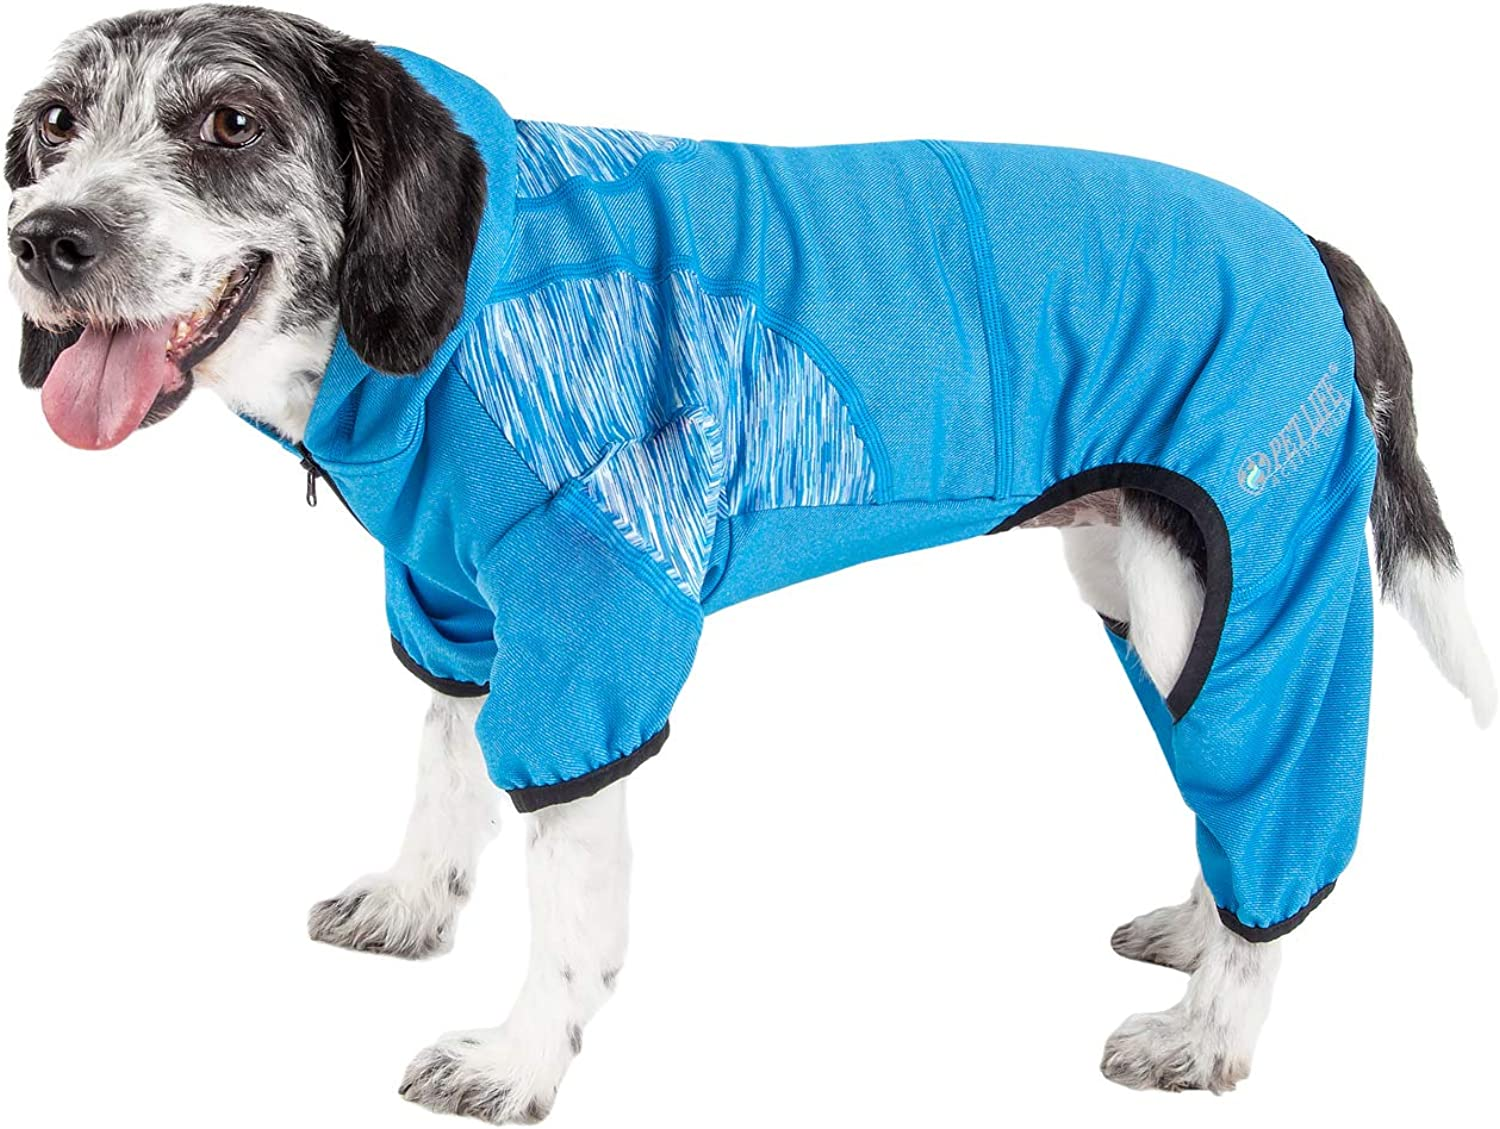 Pet Life 'Pawsterity' Heathered Performance 4Way Stretch TwoToned Full Bodied Hoodie, Small, bluee